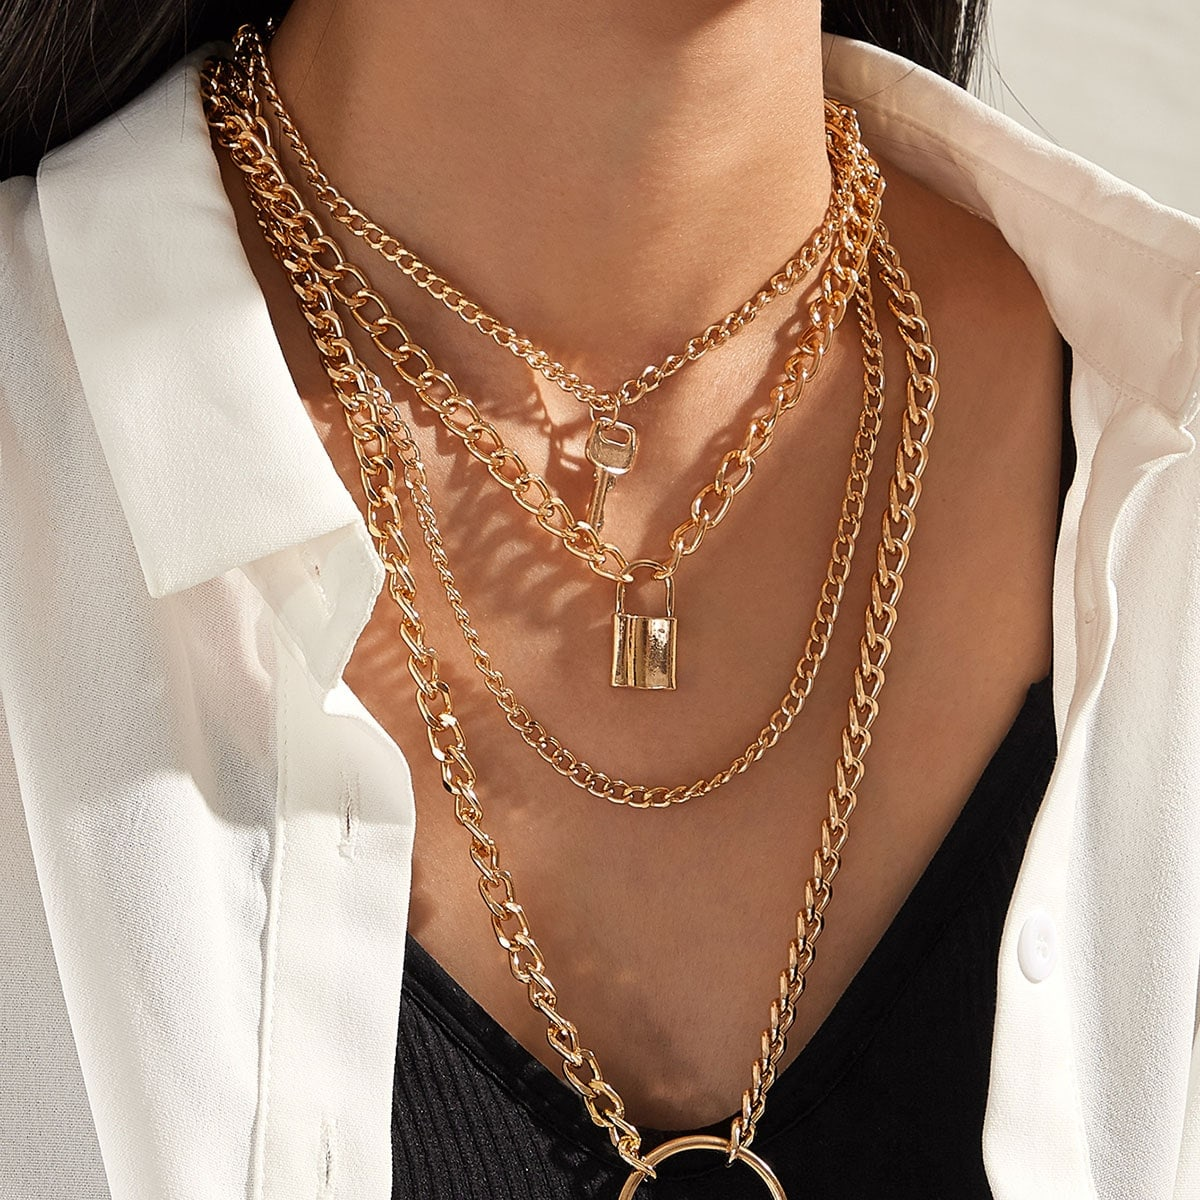 1pc Lock & Key & Ring Pendant Layered Chain Necklace